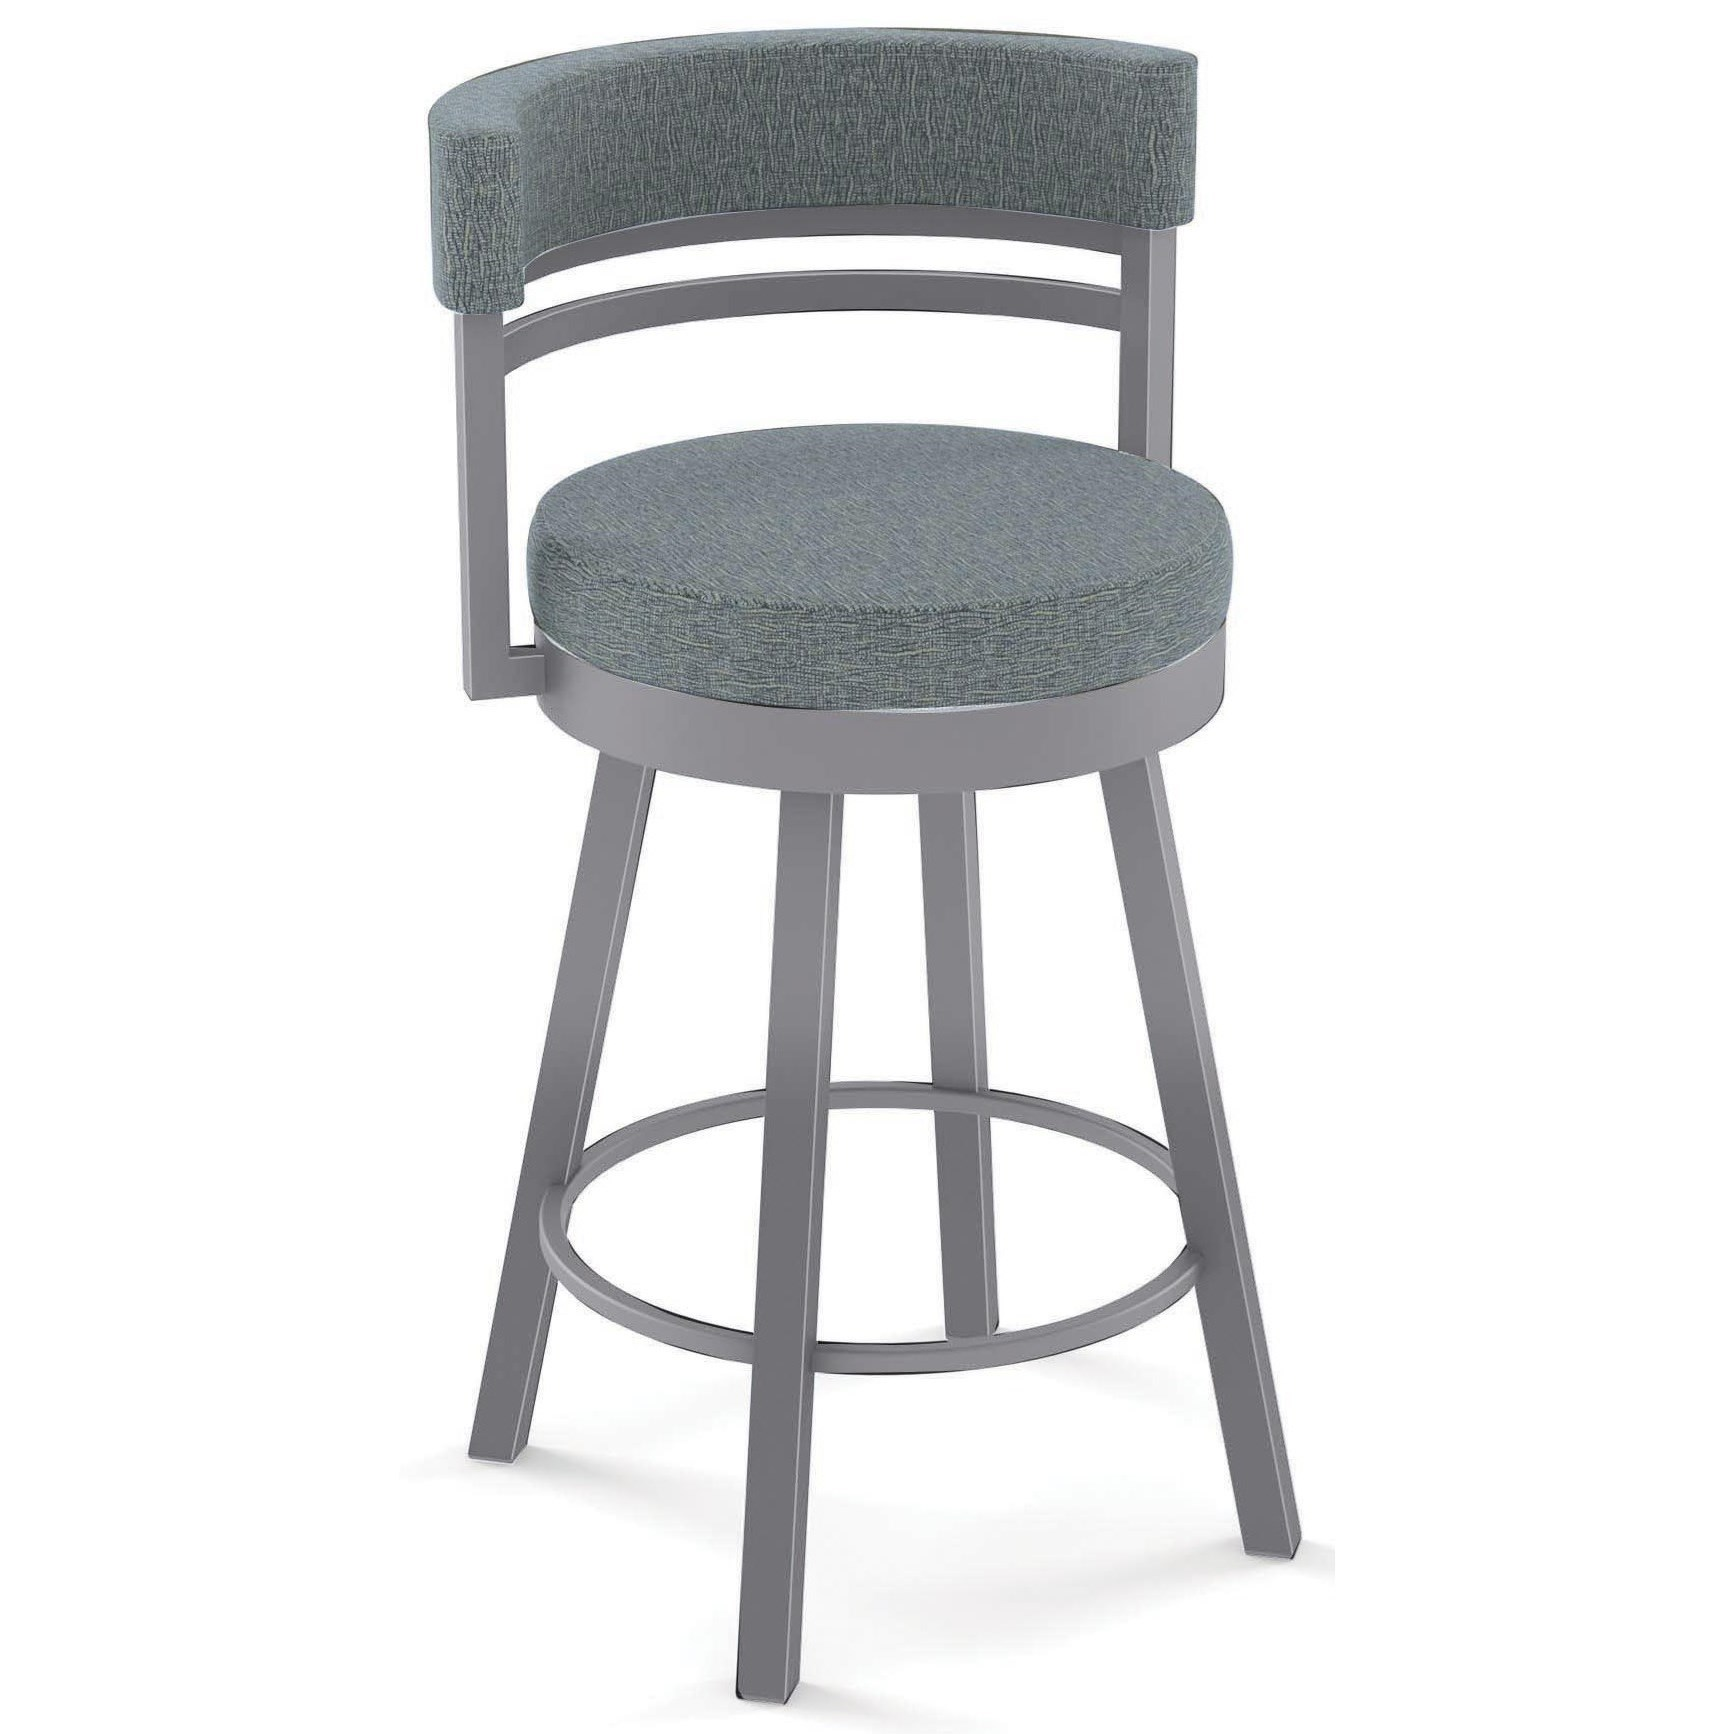 Urban Ronny Swivel Counter Stool by Amisco at HomeWorld Furniture